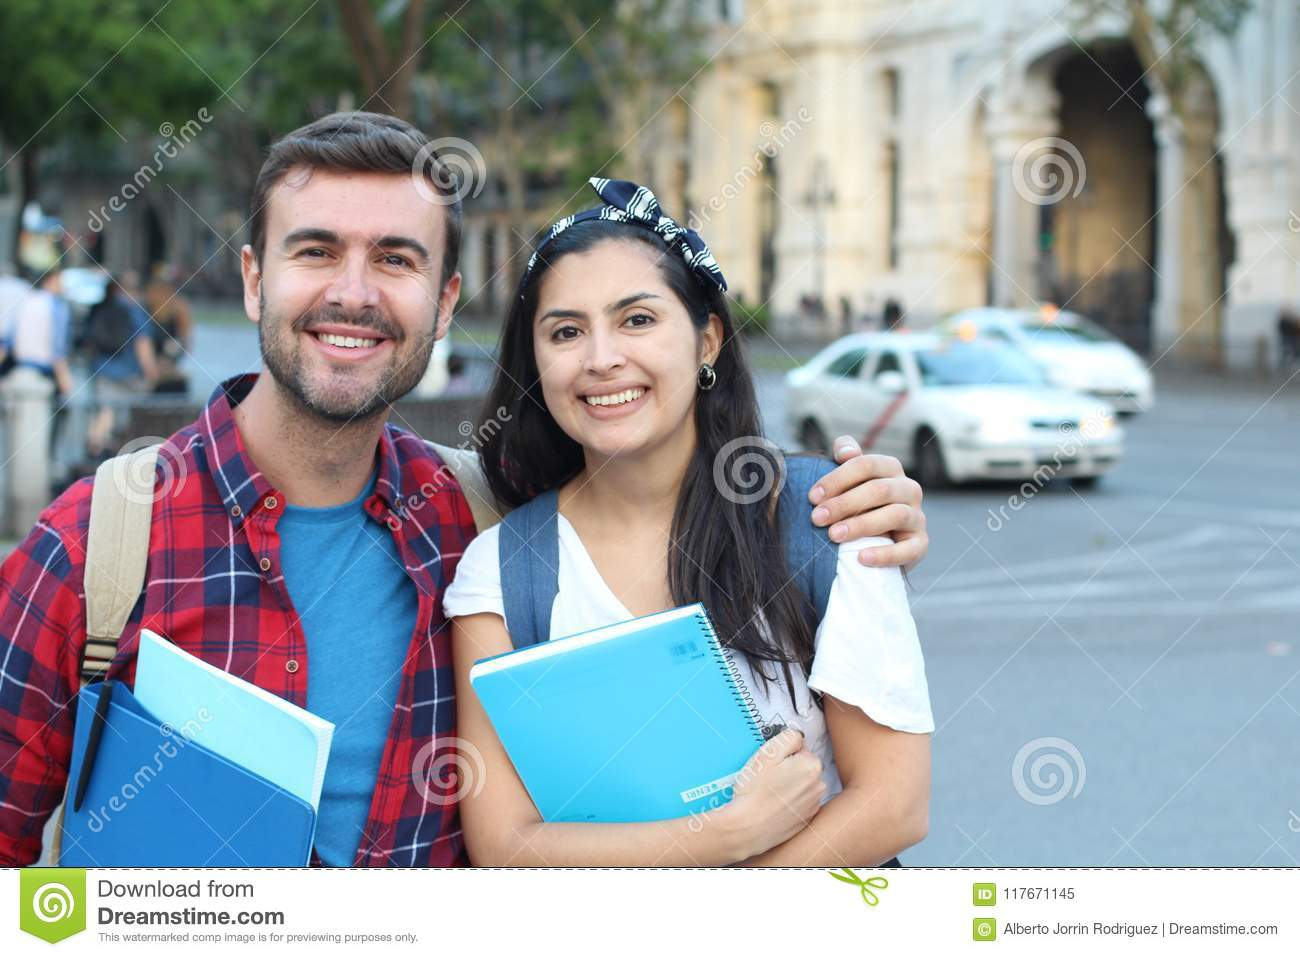 https://thumbs.dreamstime.com/z/ecstatic-couple-international-students-abroad-ecstatic-couple-international-students-abroad-117671145.jpg